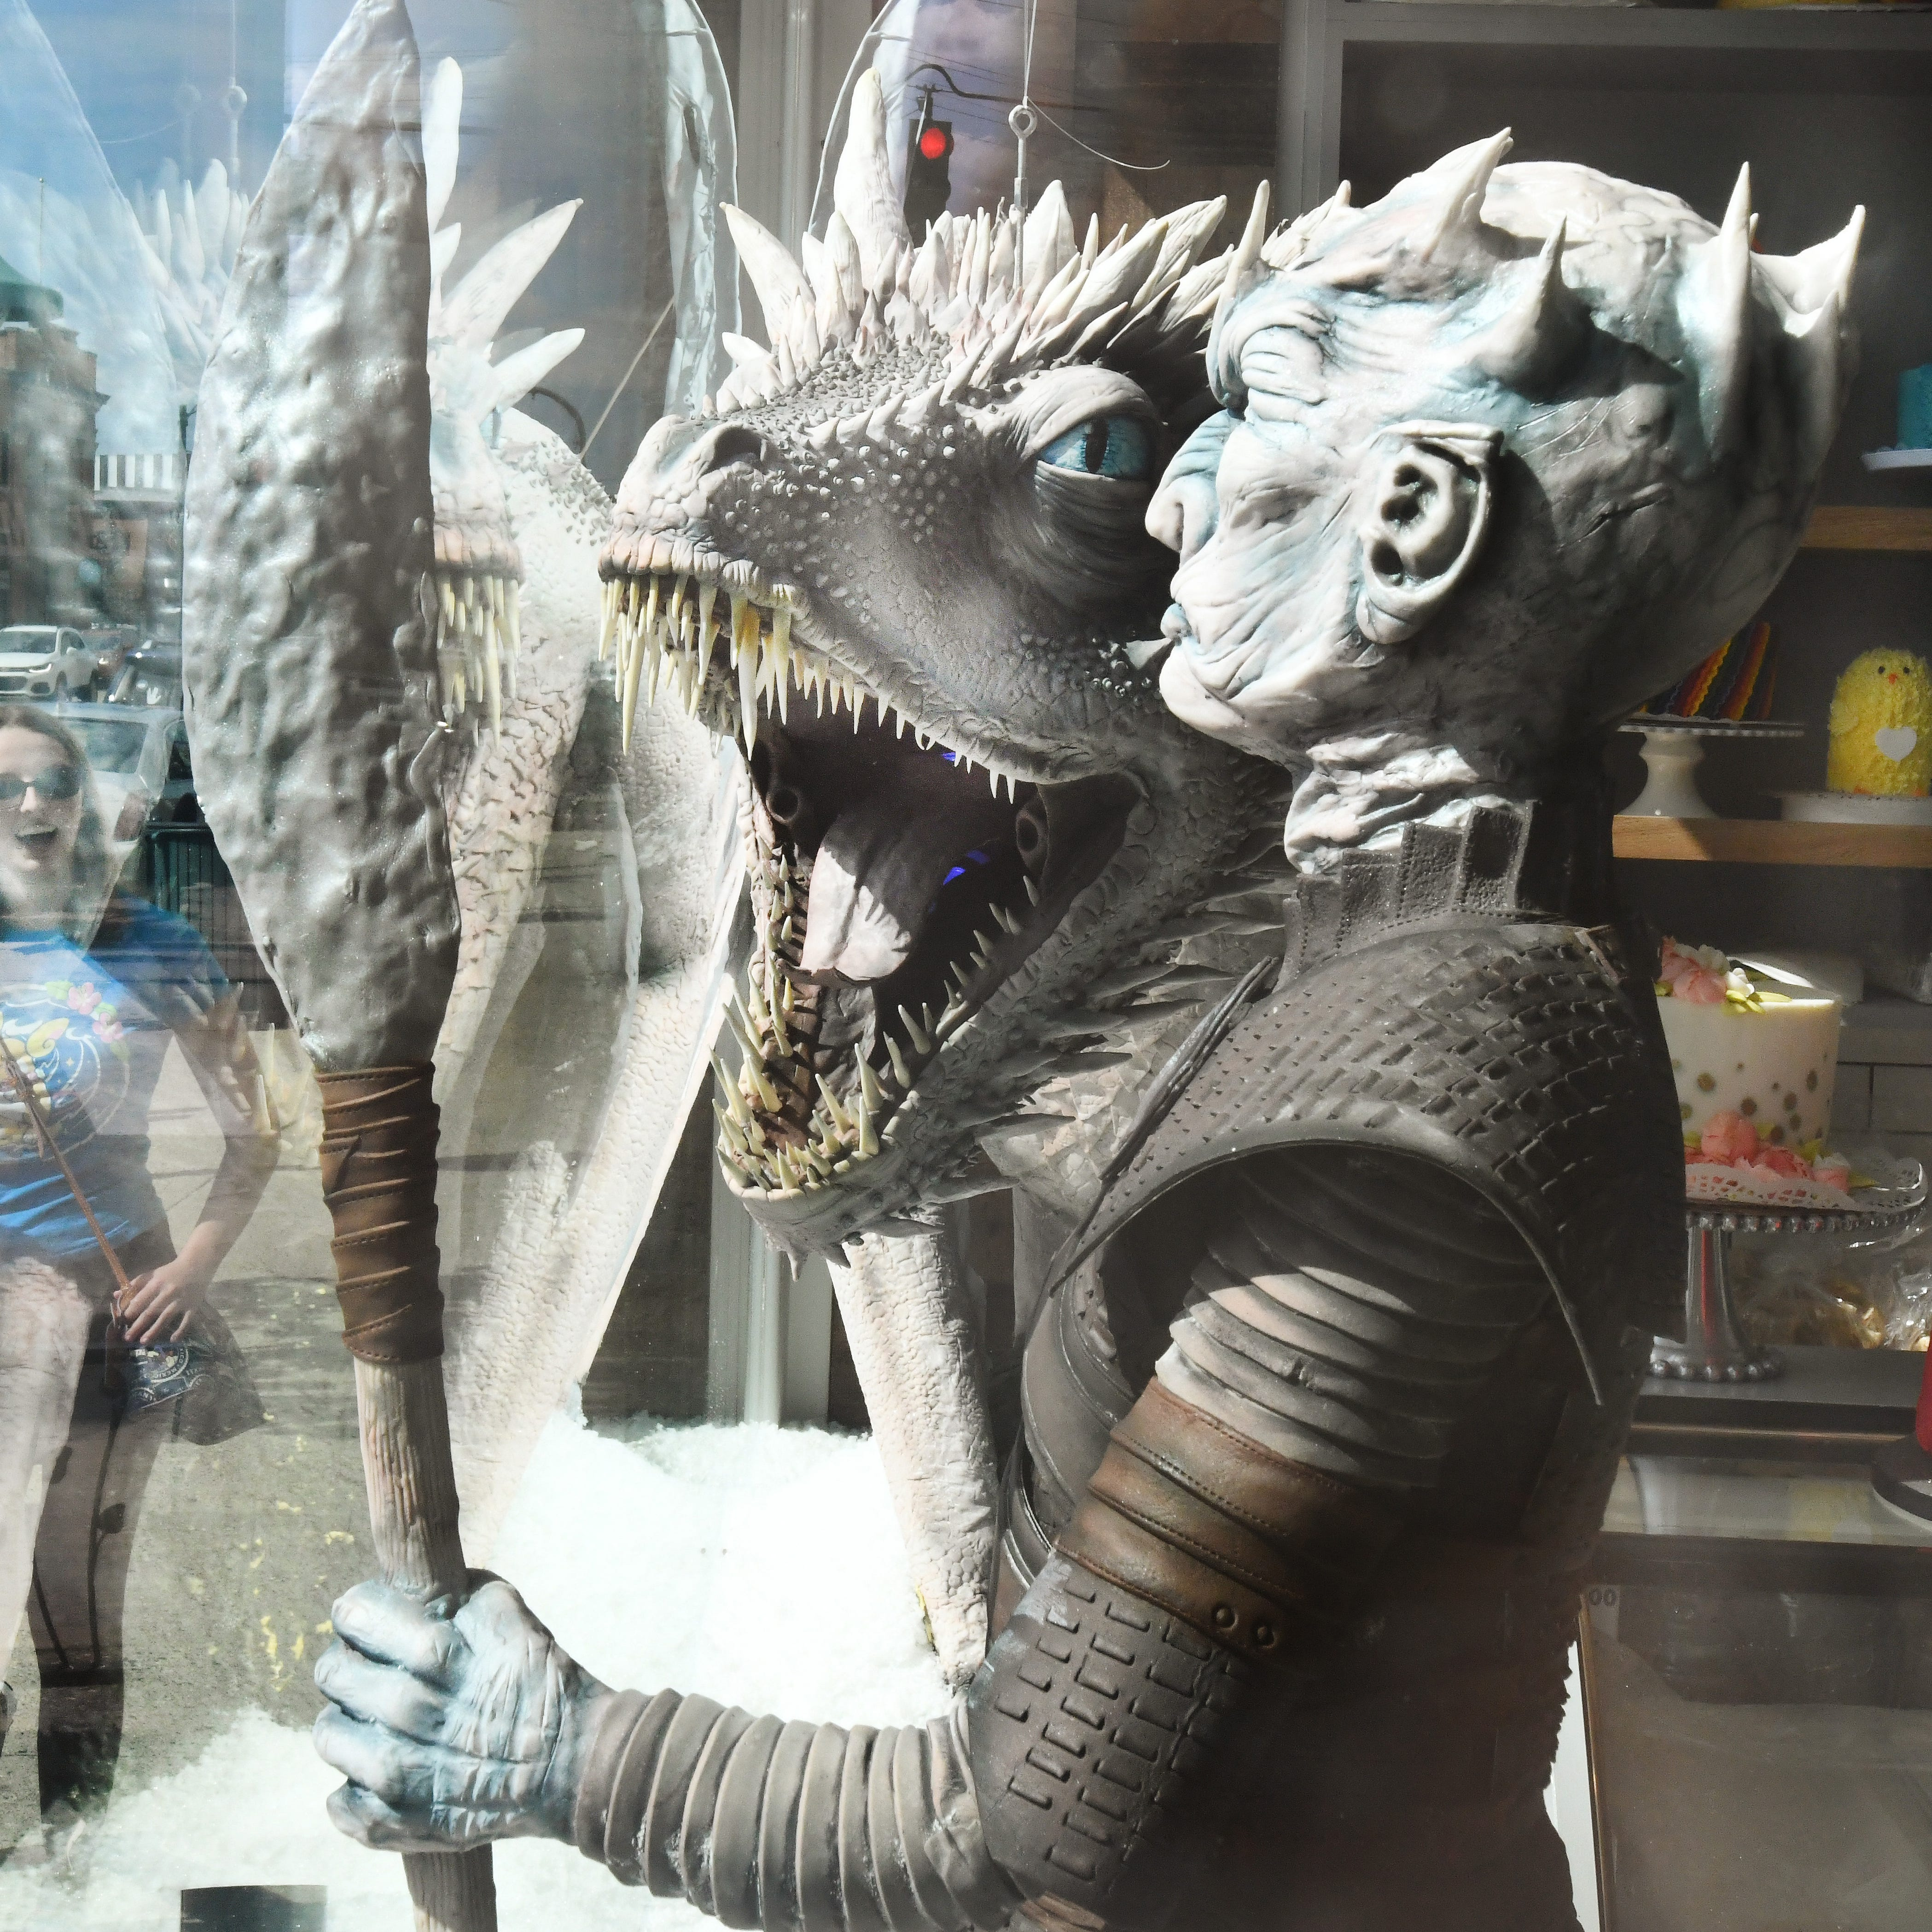 Mother of cakes: Rochester bakery's 'Game of Thrones' dragon, Night King turn heads